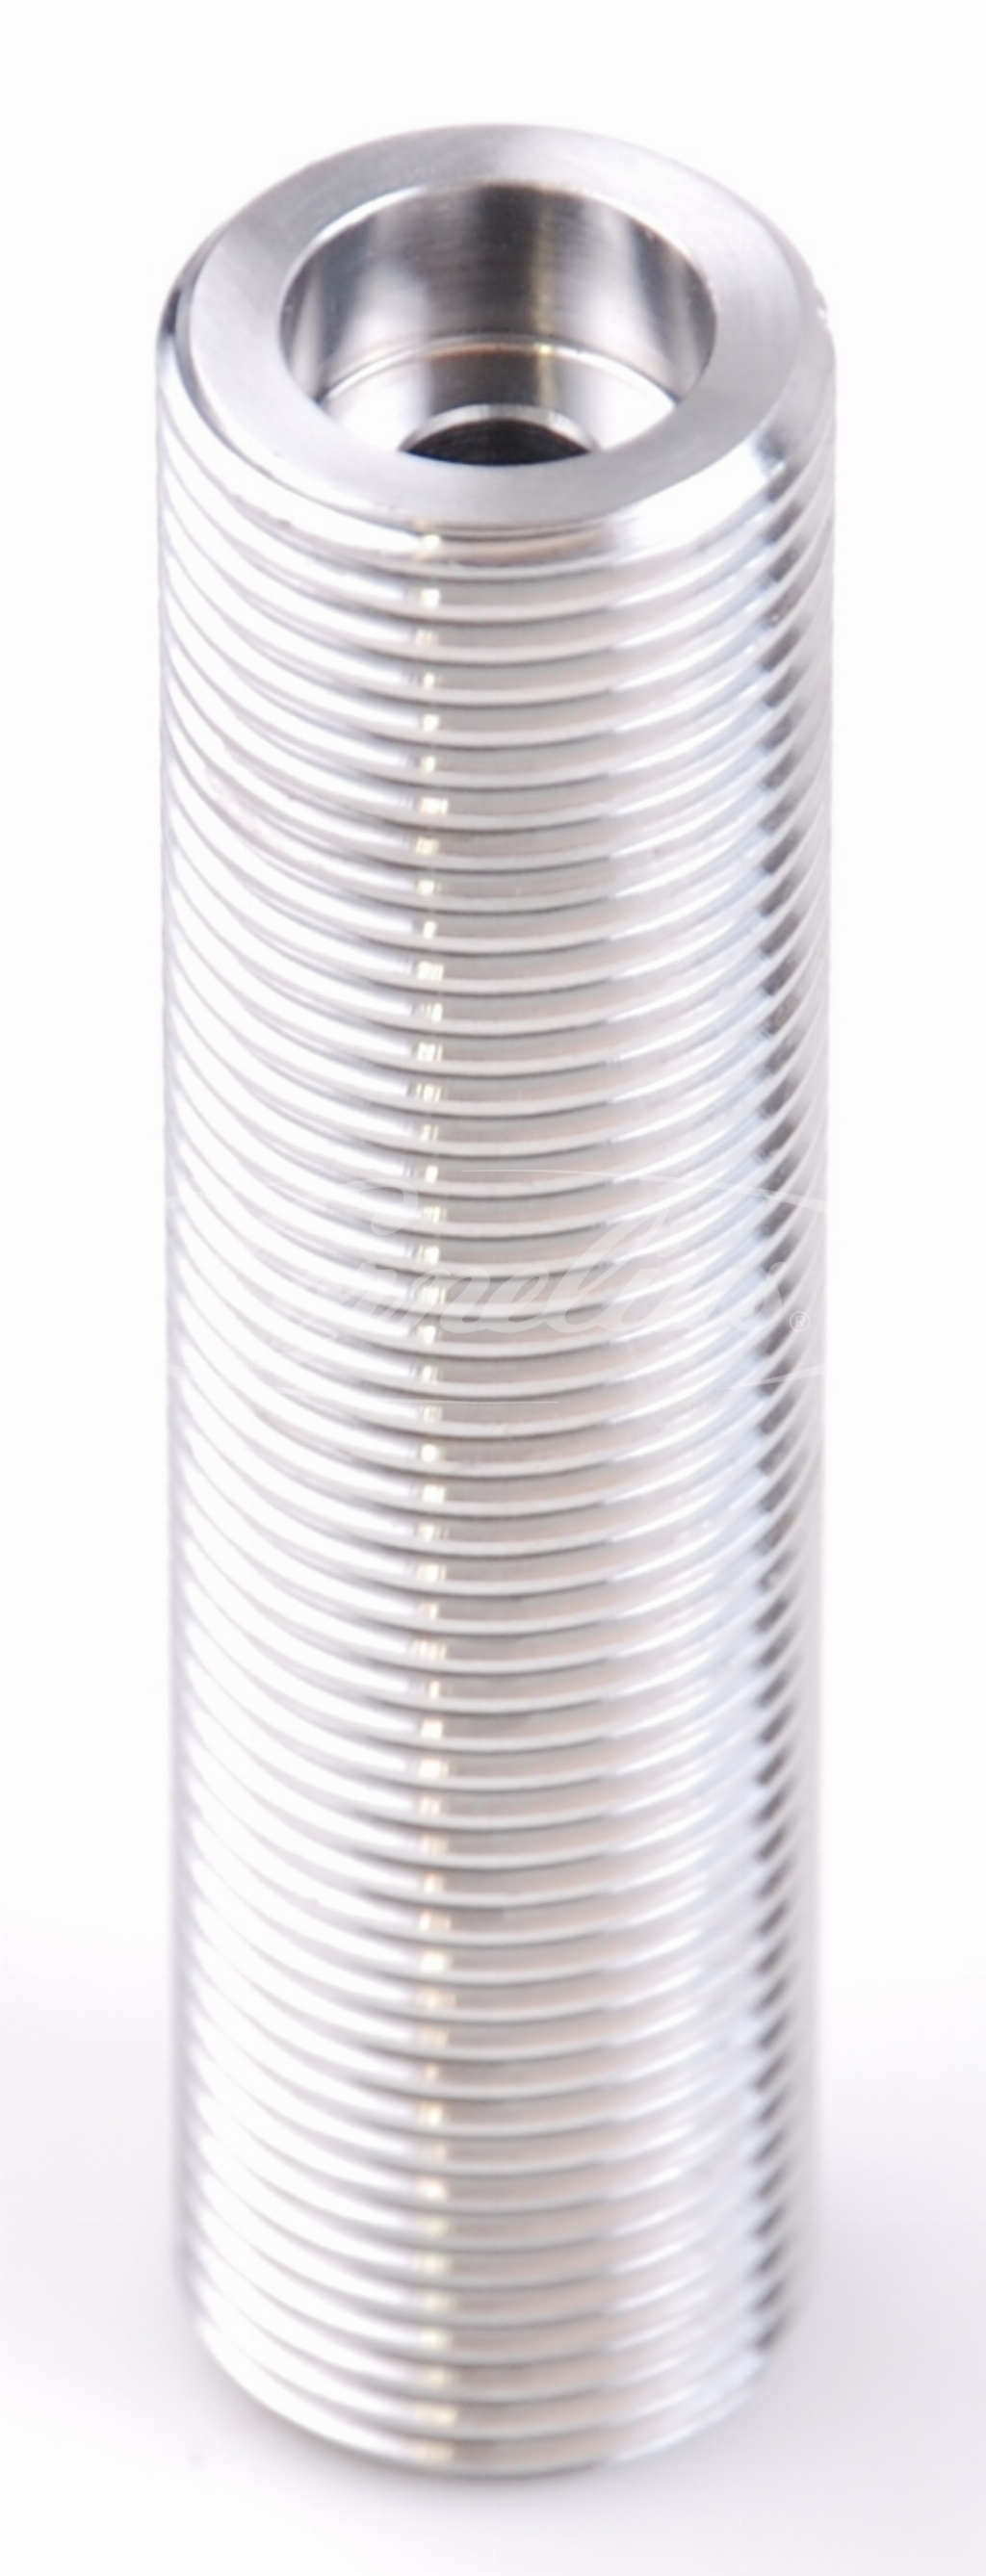 Long threaded adapt., Ø 7mm , 2x G5/8''